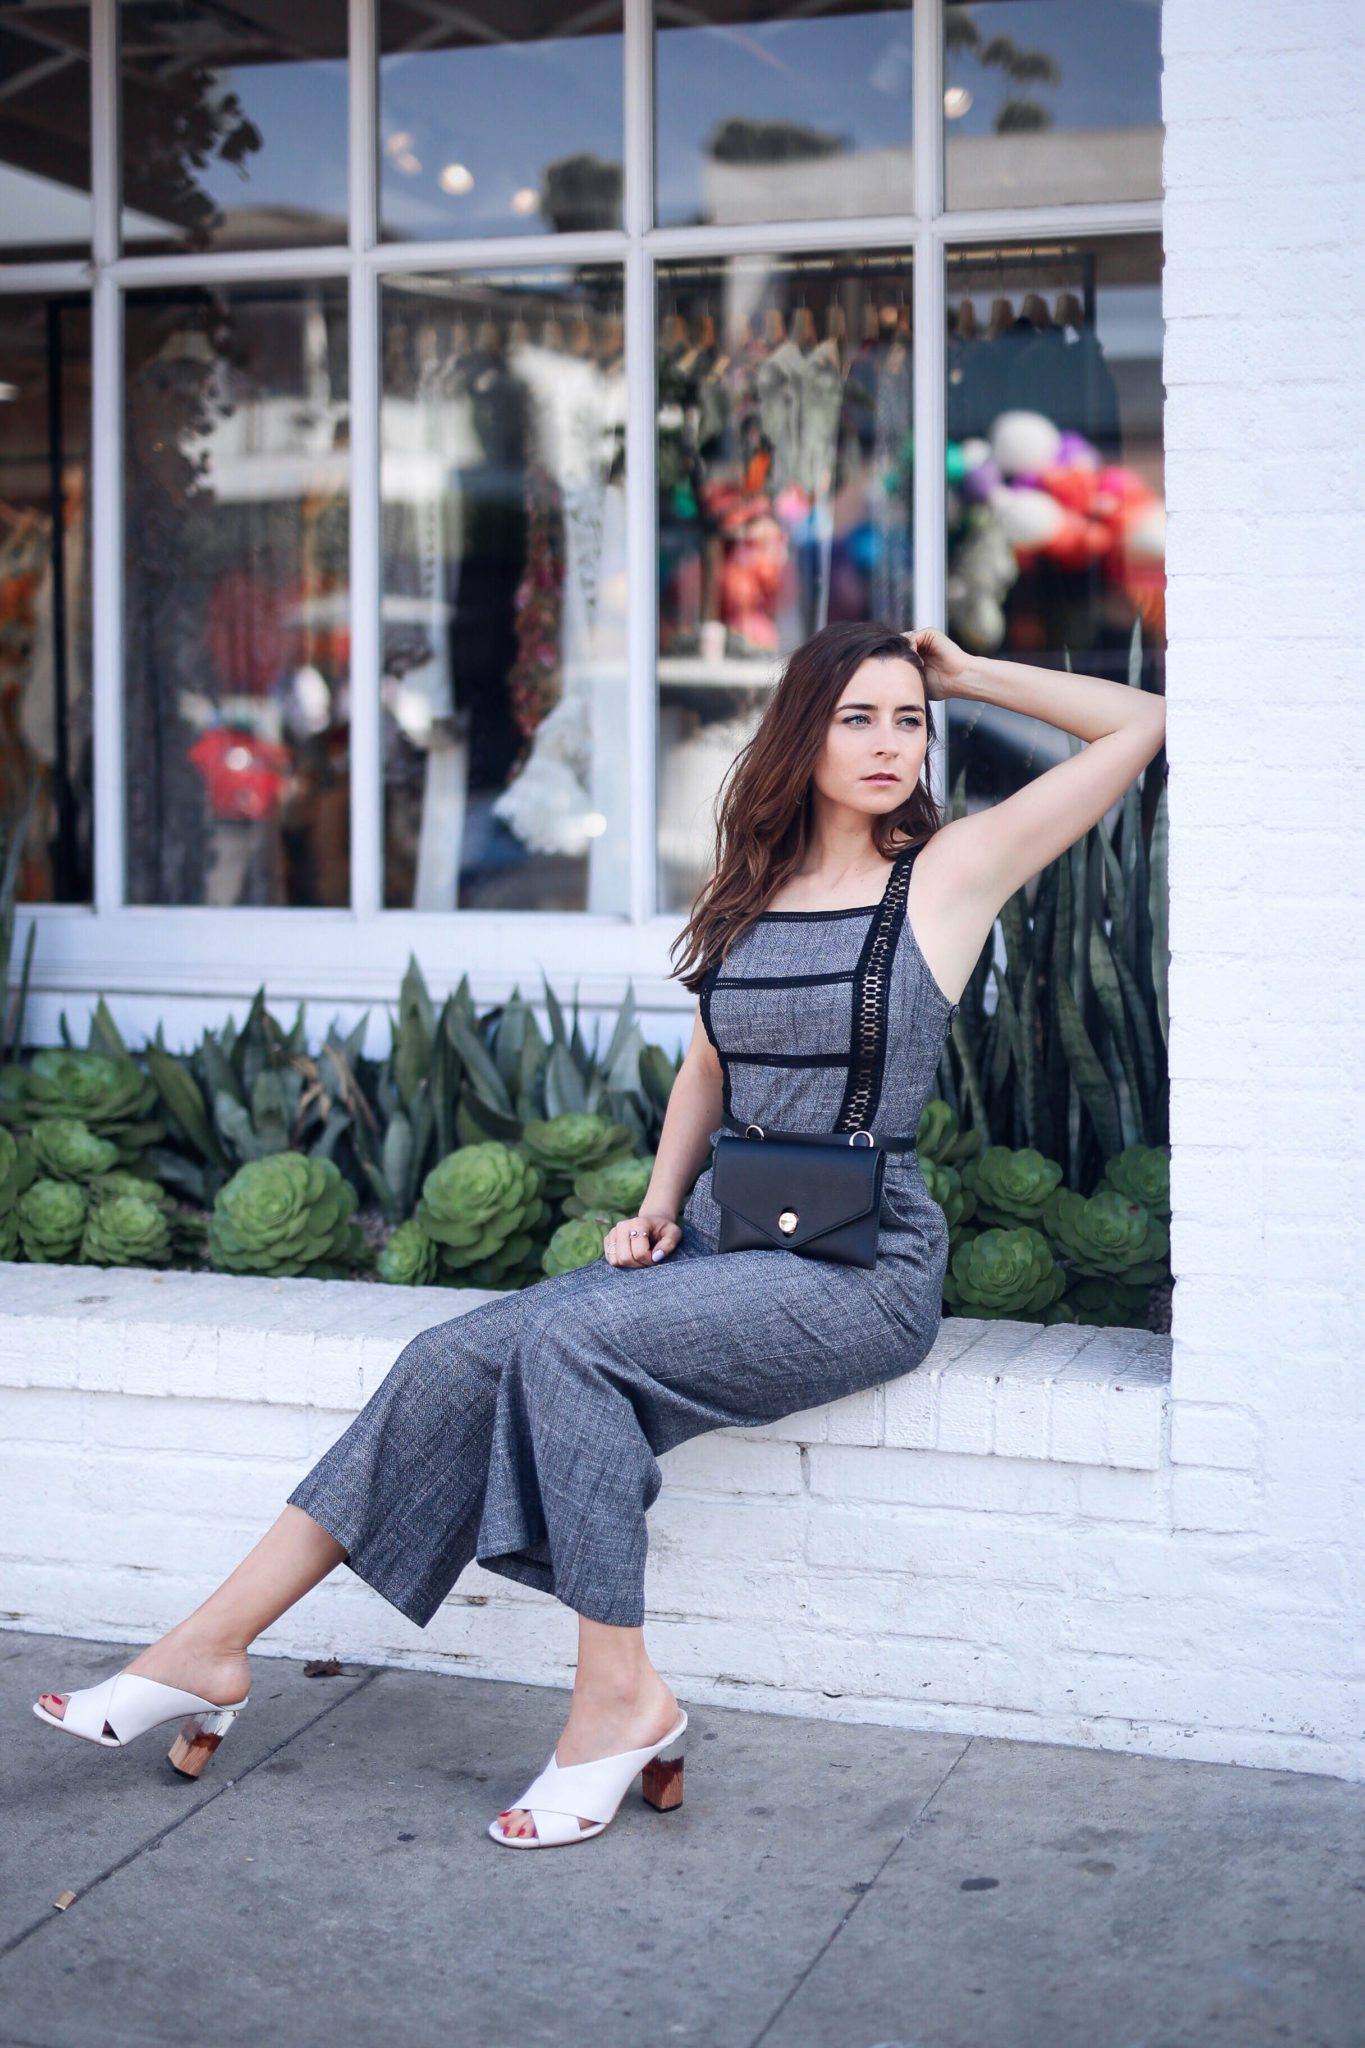 How to wear the belt bag: best belt bags, designer bum bags, fanny packs under $100 - Pin to read later on Houseofcomil.com. Jumpsuit by Moon River